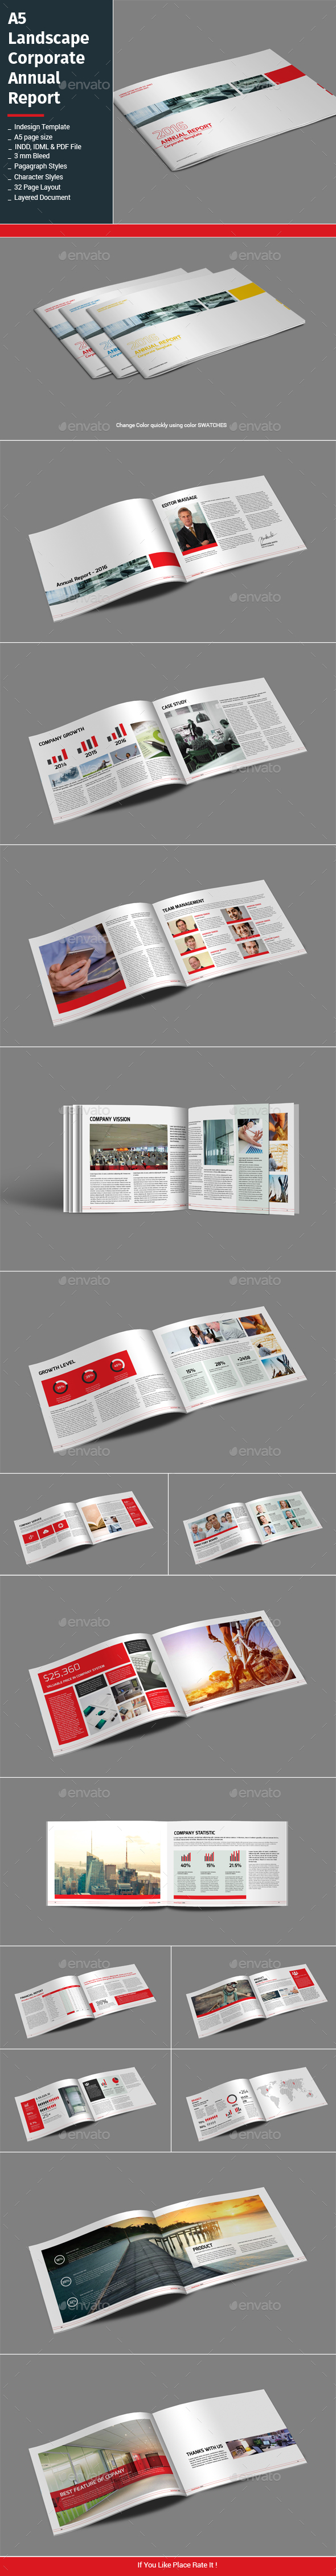 A5 Landscape Corporate Annual Report - Informational Brochures